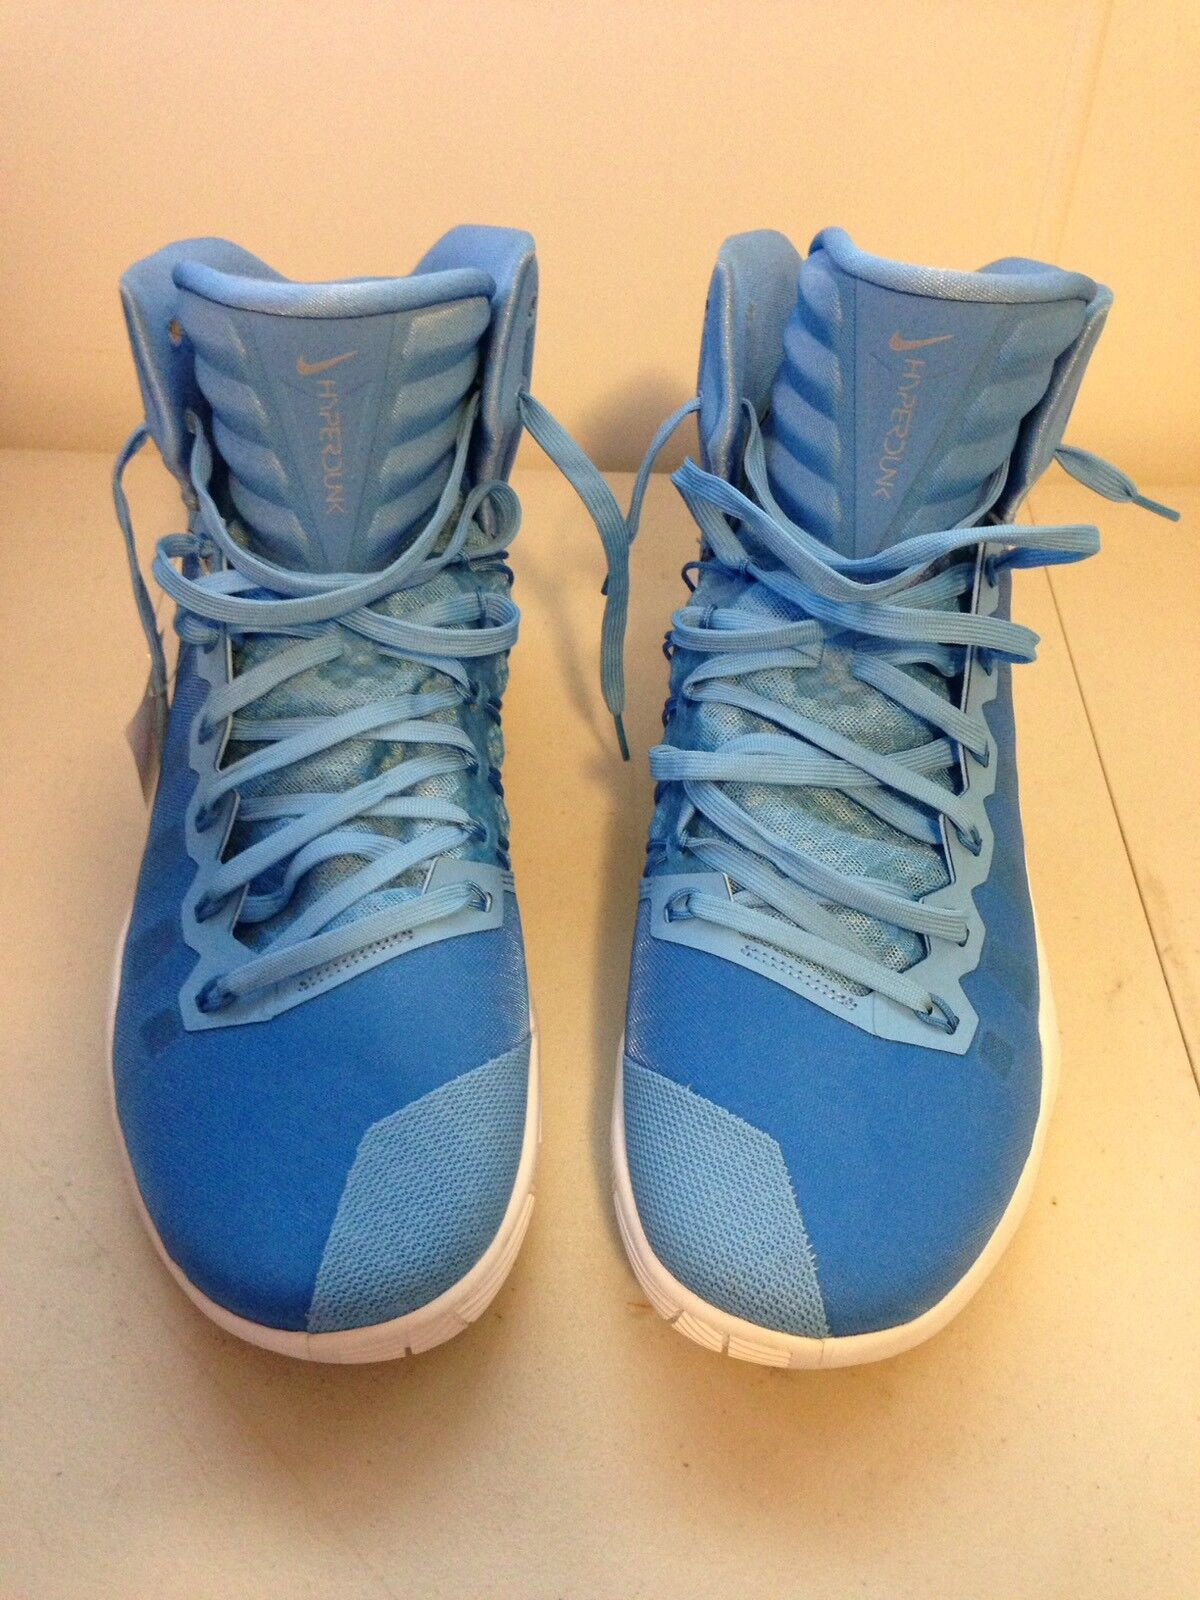 The most popular shoes for men and women Men's NIKE Zoom Hyperdunk Athletic Sneakers, Price reduction